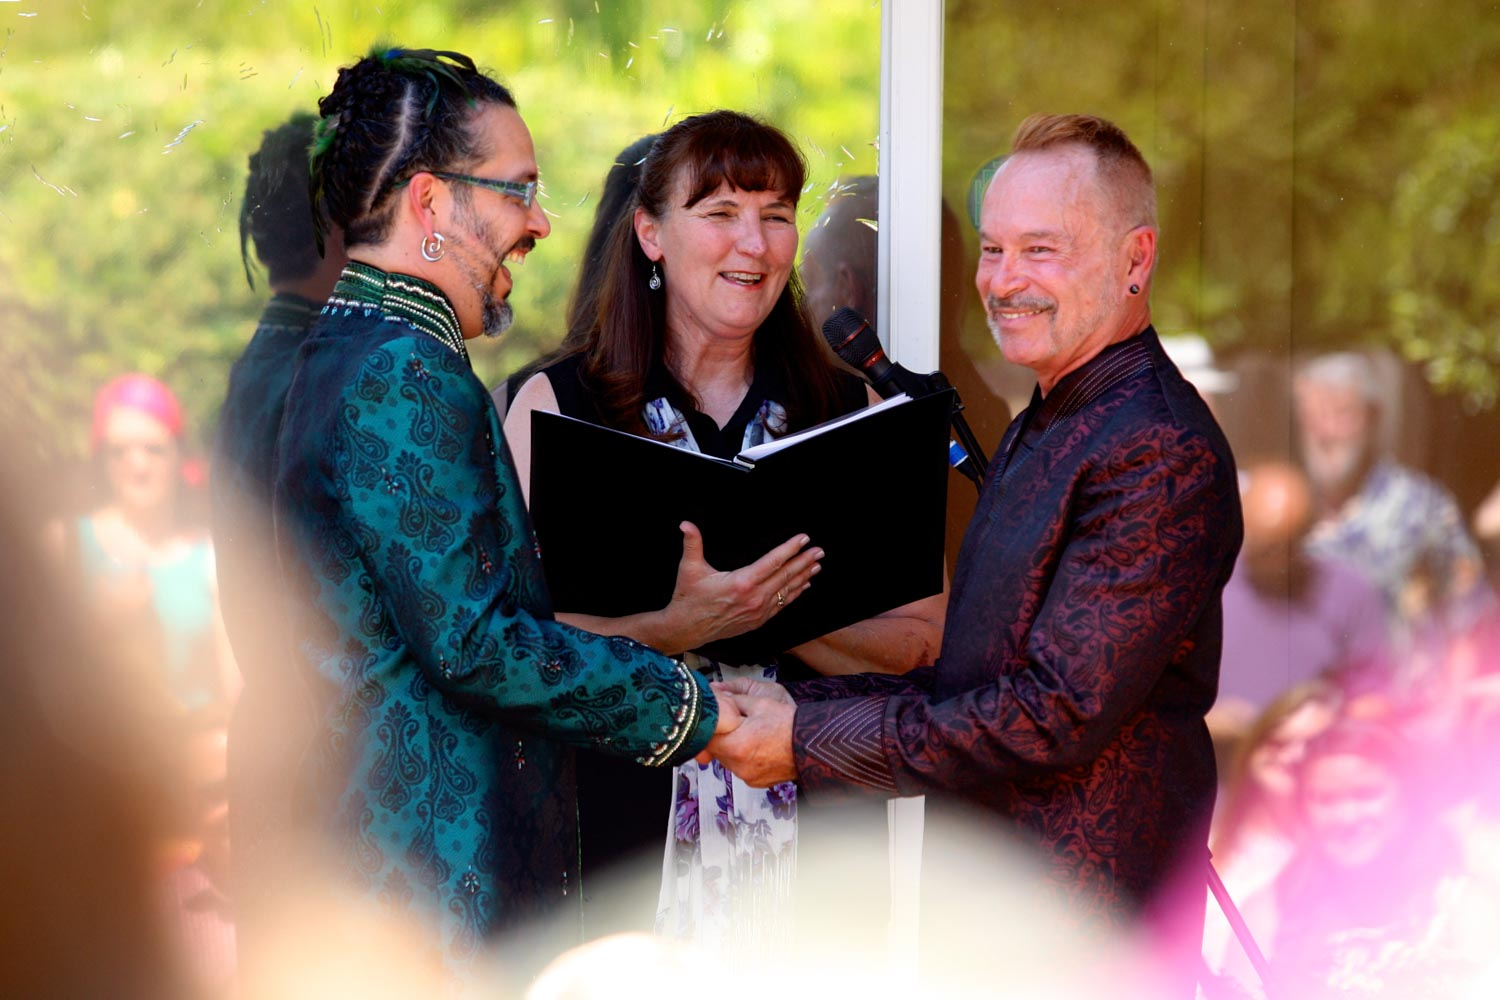 Two grooms laughing during wedding ceremony, with officiant in background